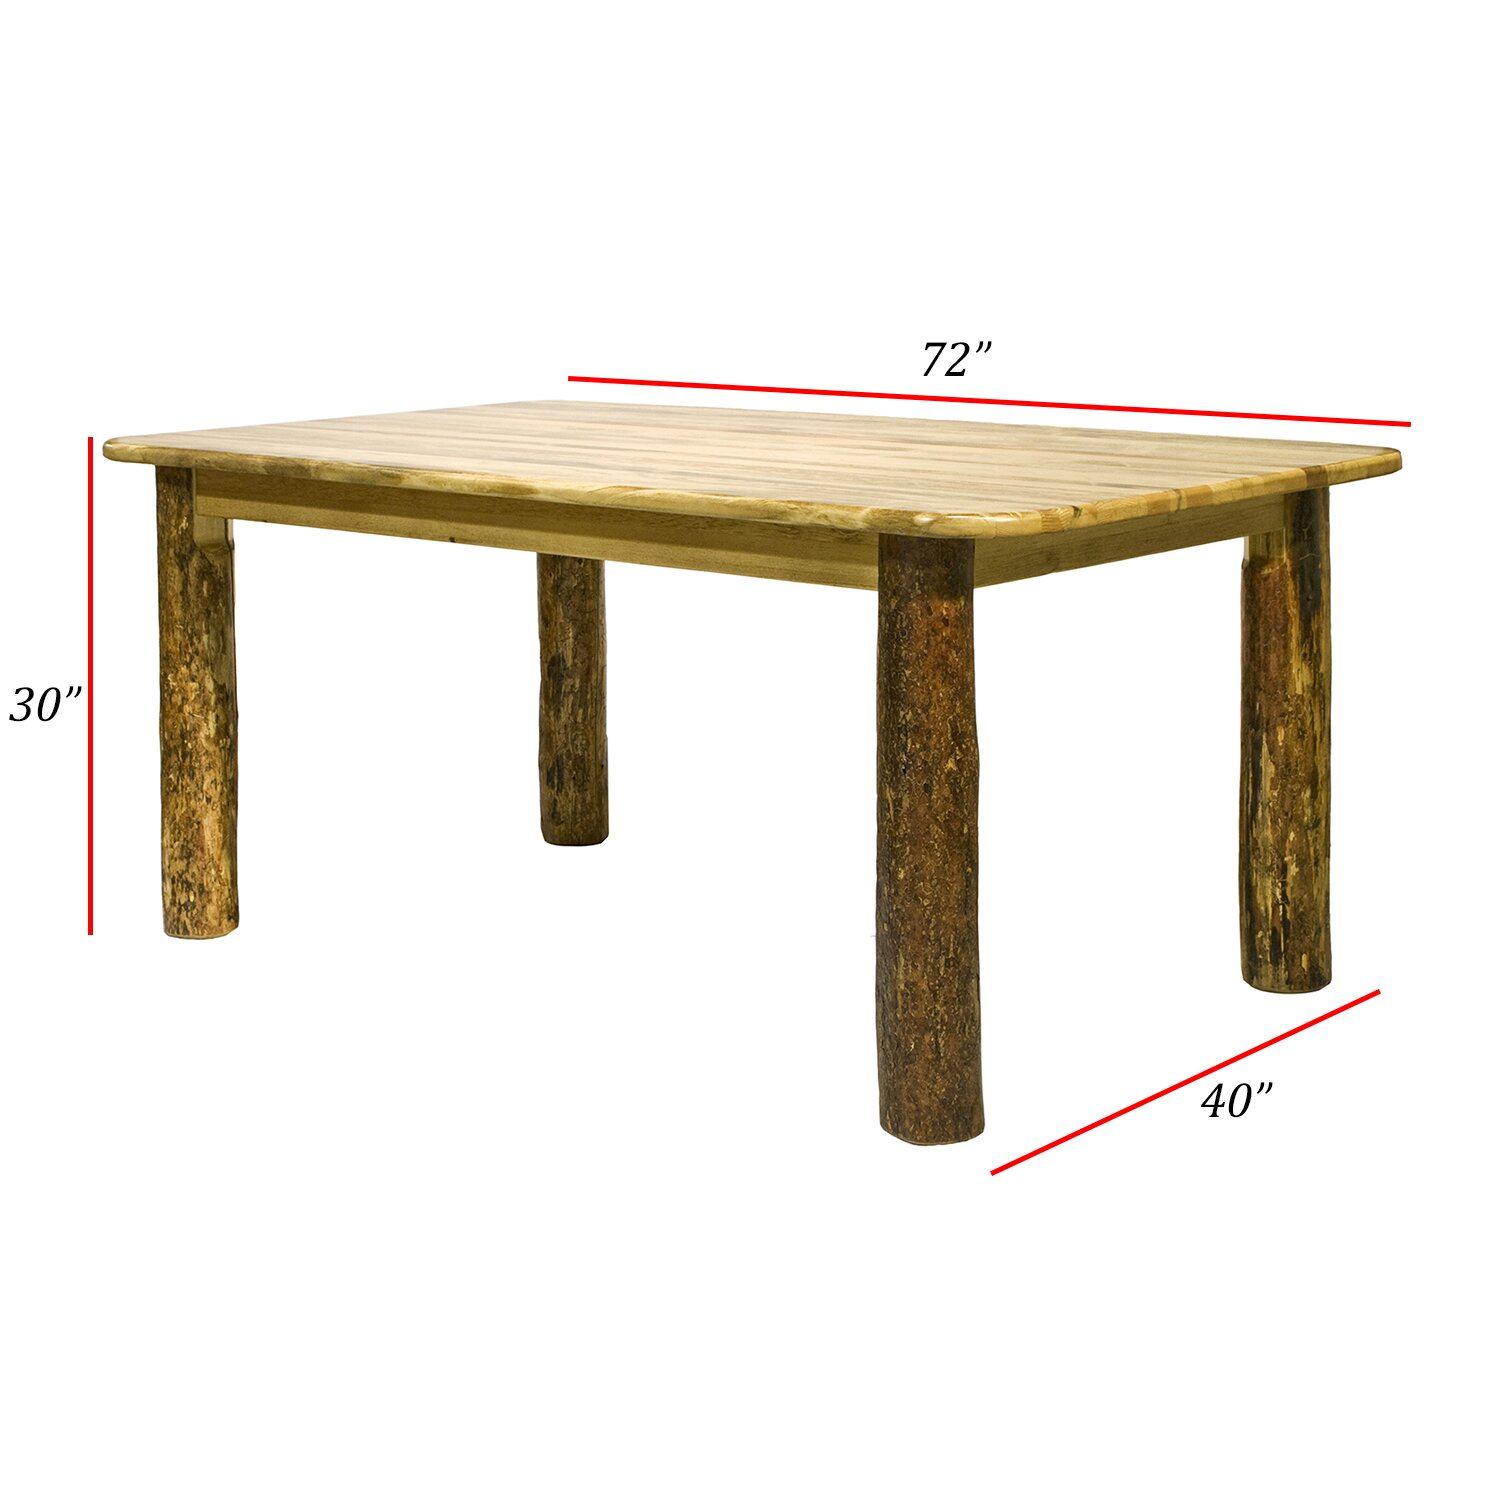 Montana WoodworksC2AE Glacier Country 4 Post Dining Table HFA